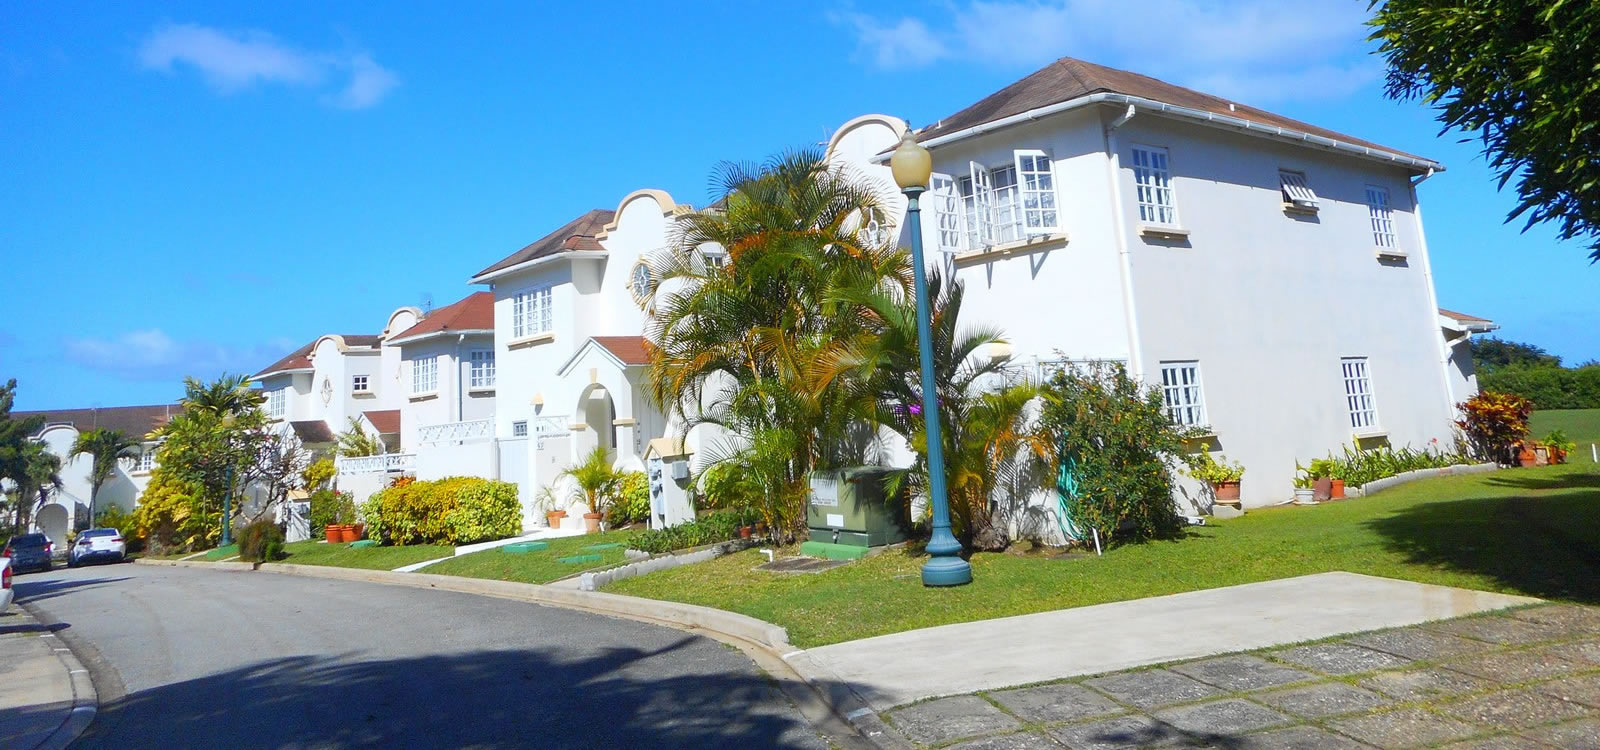 Christ Church Townhouse For Sale 3 Bedroom on Anguilla Real Estate Home For Sale